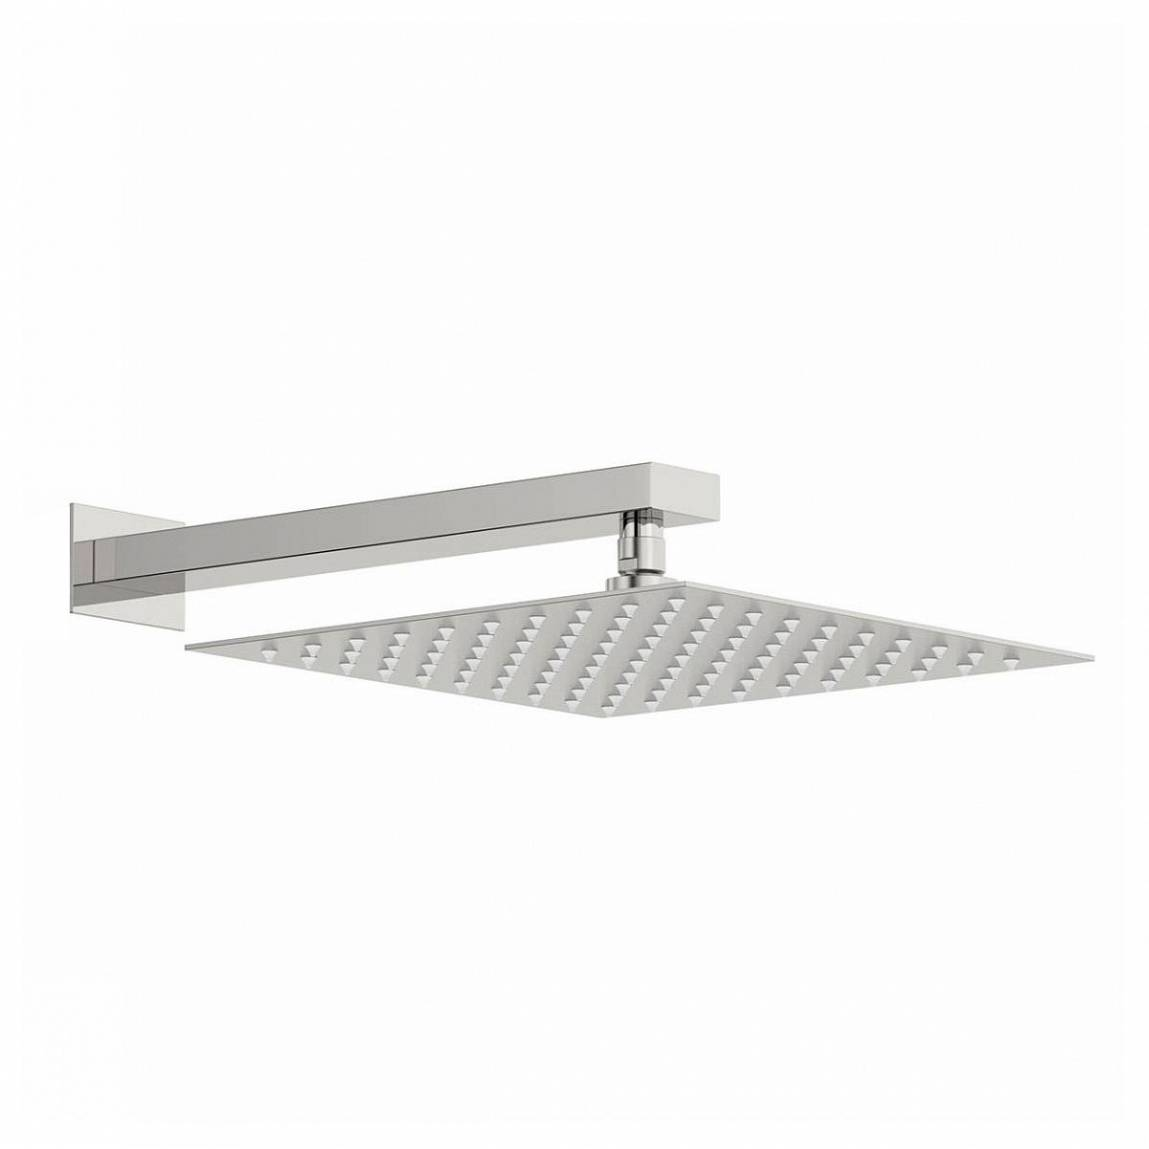 Image of Incus 300mm Shower Head & Rectangular Wall Arm